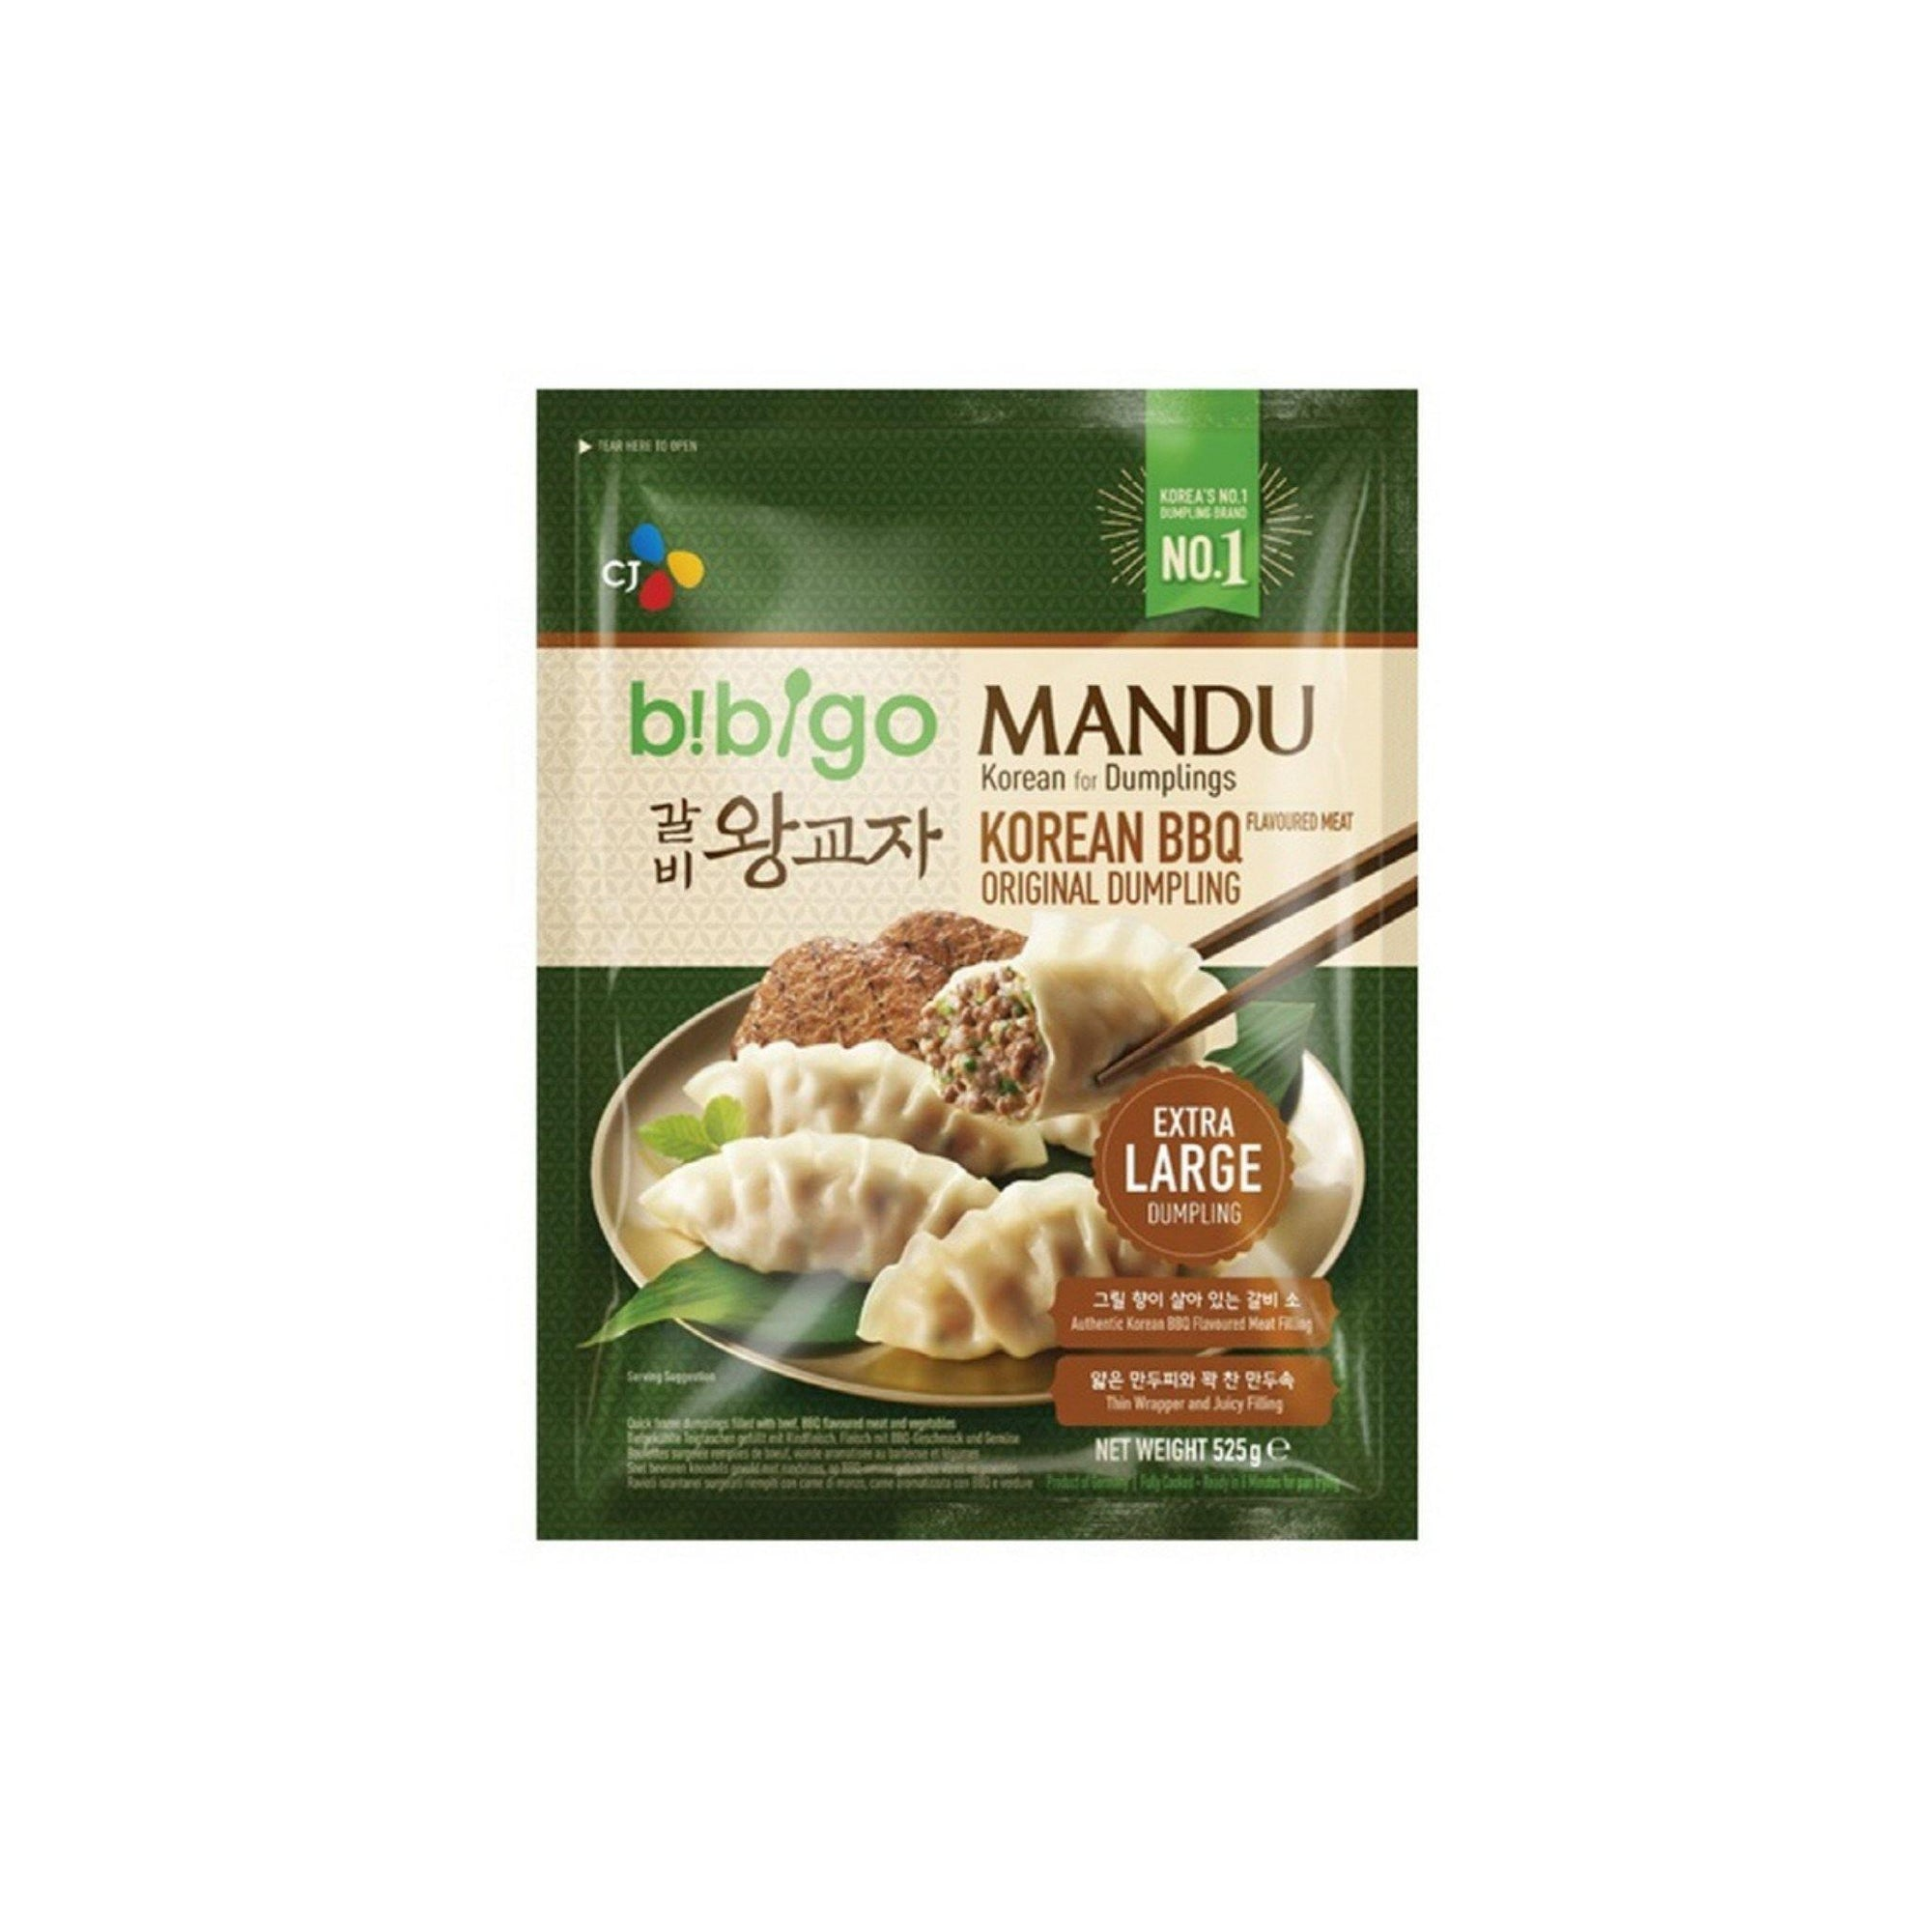 Bibigo Korean BBQ Dumpling 525G - Asian Harvest